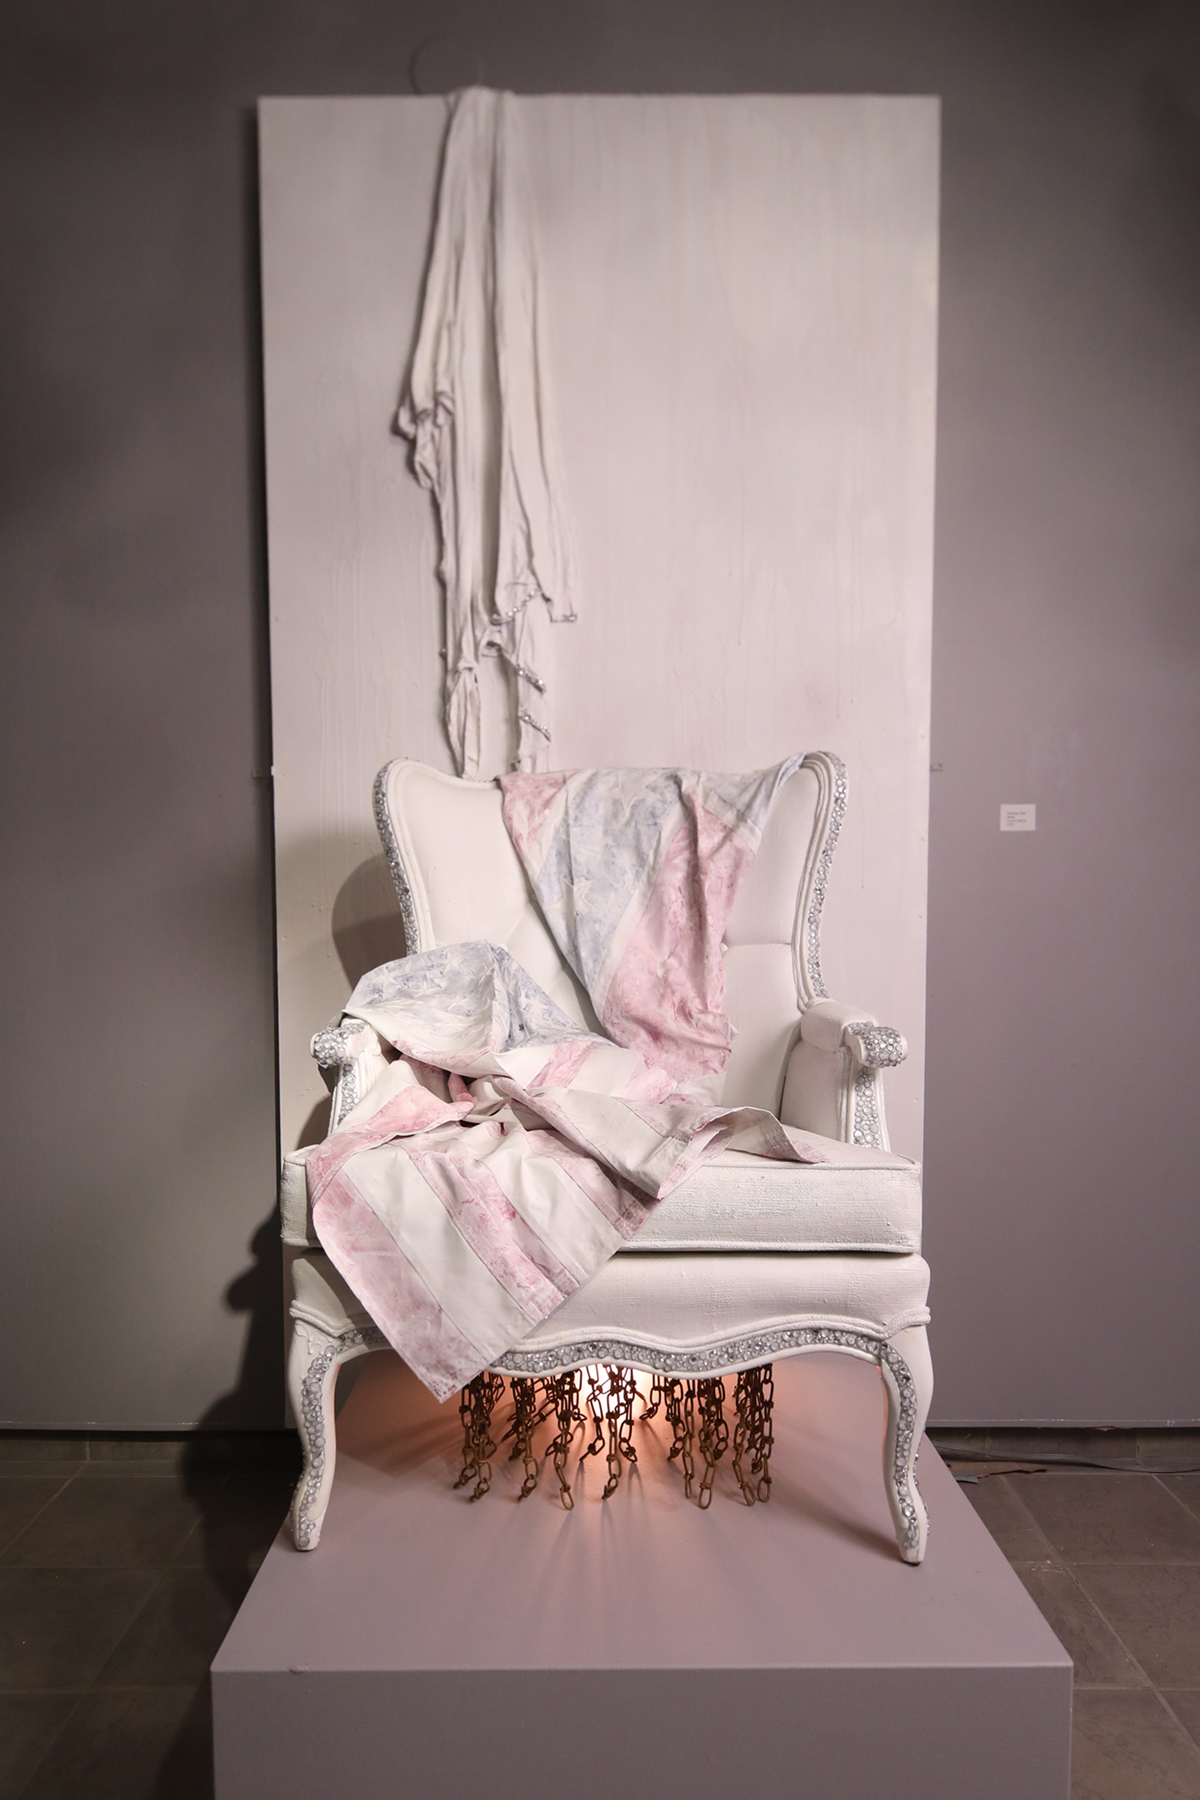 A found object sculpture incorporating a chair.